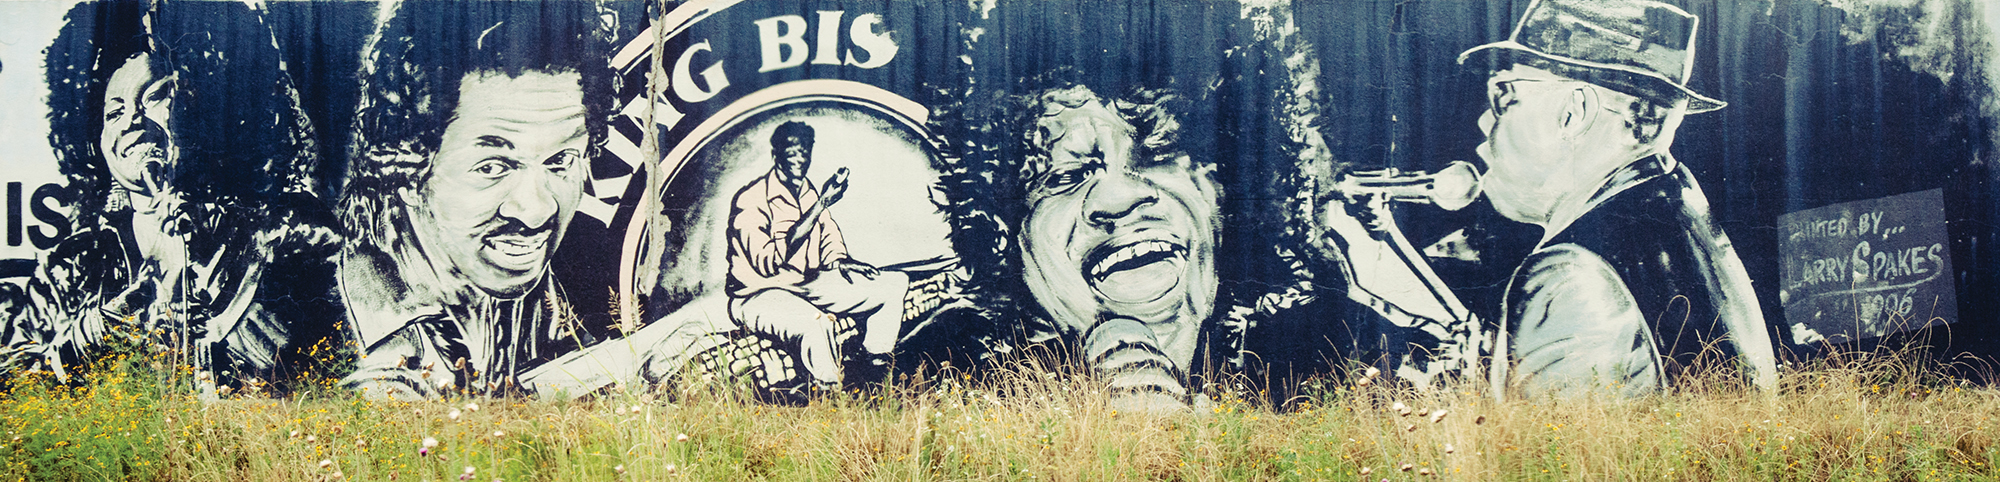 This mural celebrates one of the Arkansas Delta's signature events and is located near the Delta Cultural Center, this year's featured facility.